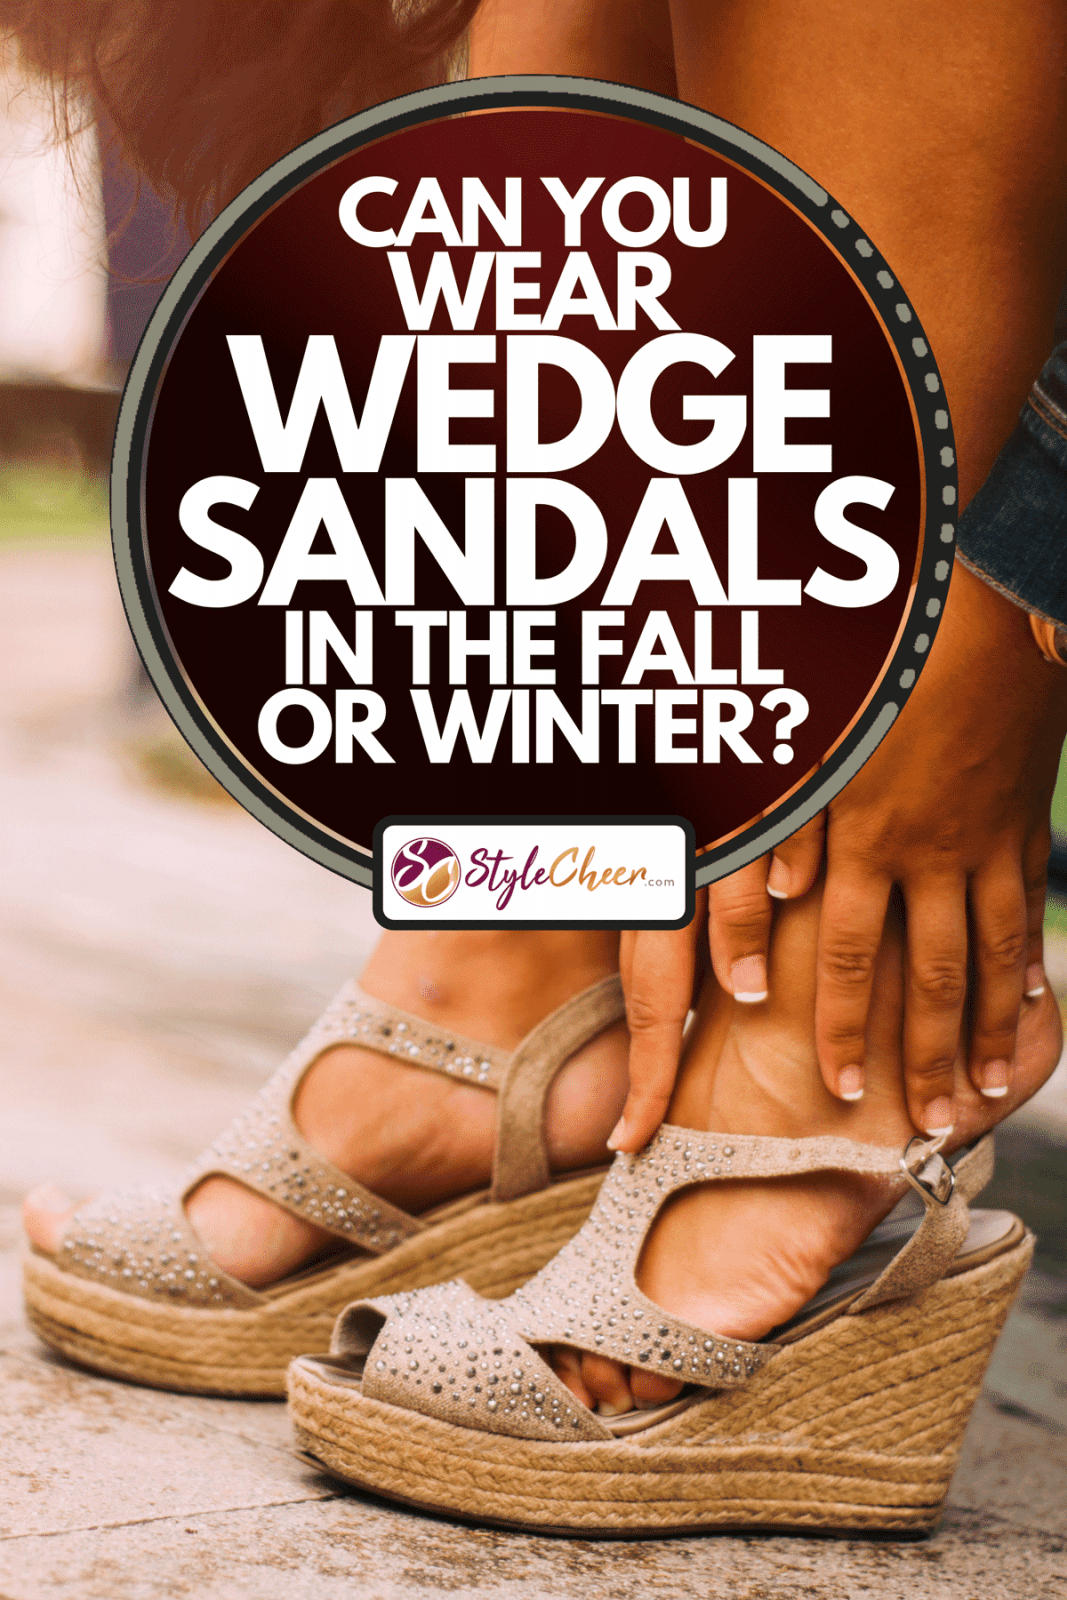 Young woman with wedge sandals sitting on a bench checking her feet, Can You Wear Wedge Sandals In The Fall Or Winter?